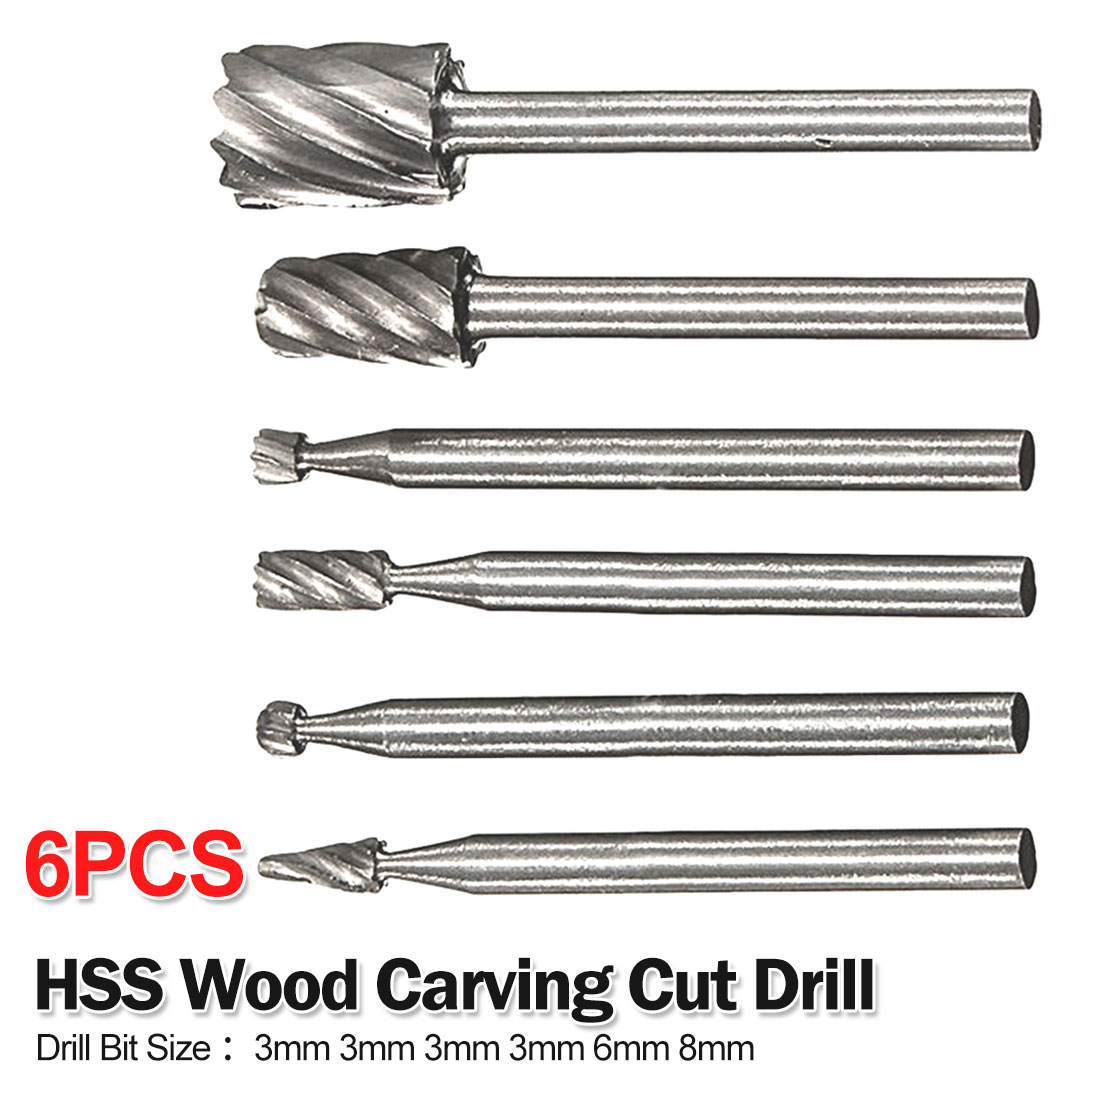 HSS Drill Bit Set 6pcs Cutting Routing Grinding Bit  Rotary Tool Milling Cutter For Woodworking/Plastic 3mm 3mm 3mm 3mm 6mm 8mm